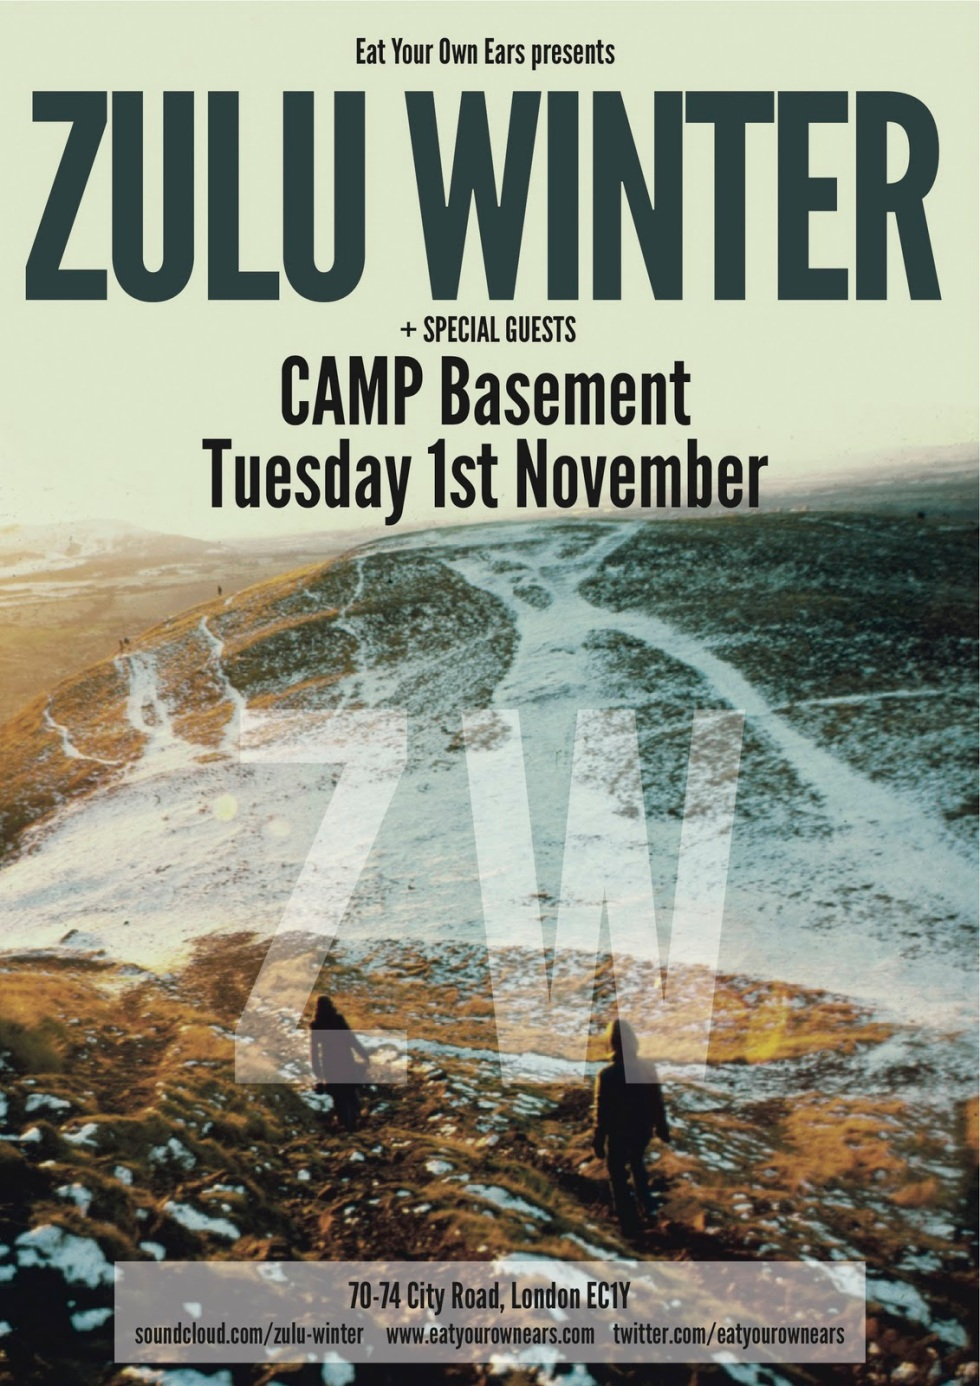 Zulu Winter - Talk Origins, Hype and Why They're Not the Next Wild Beasts